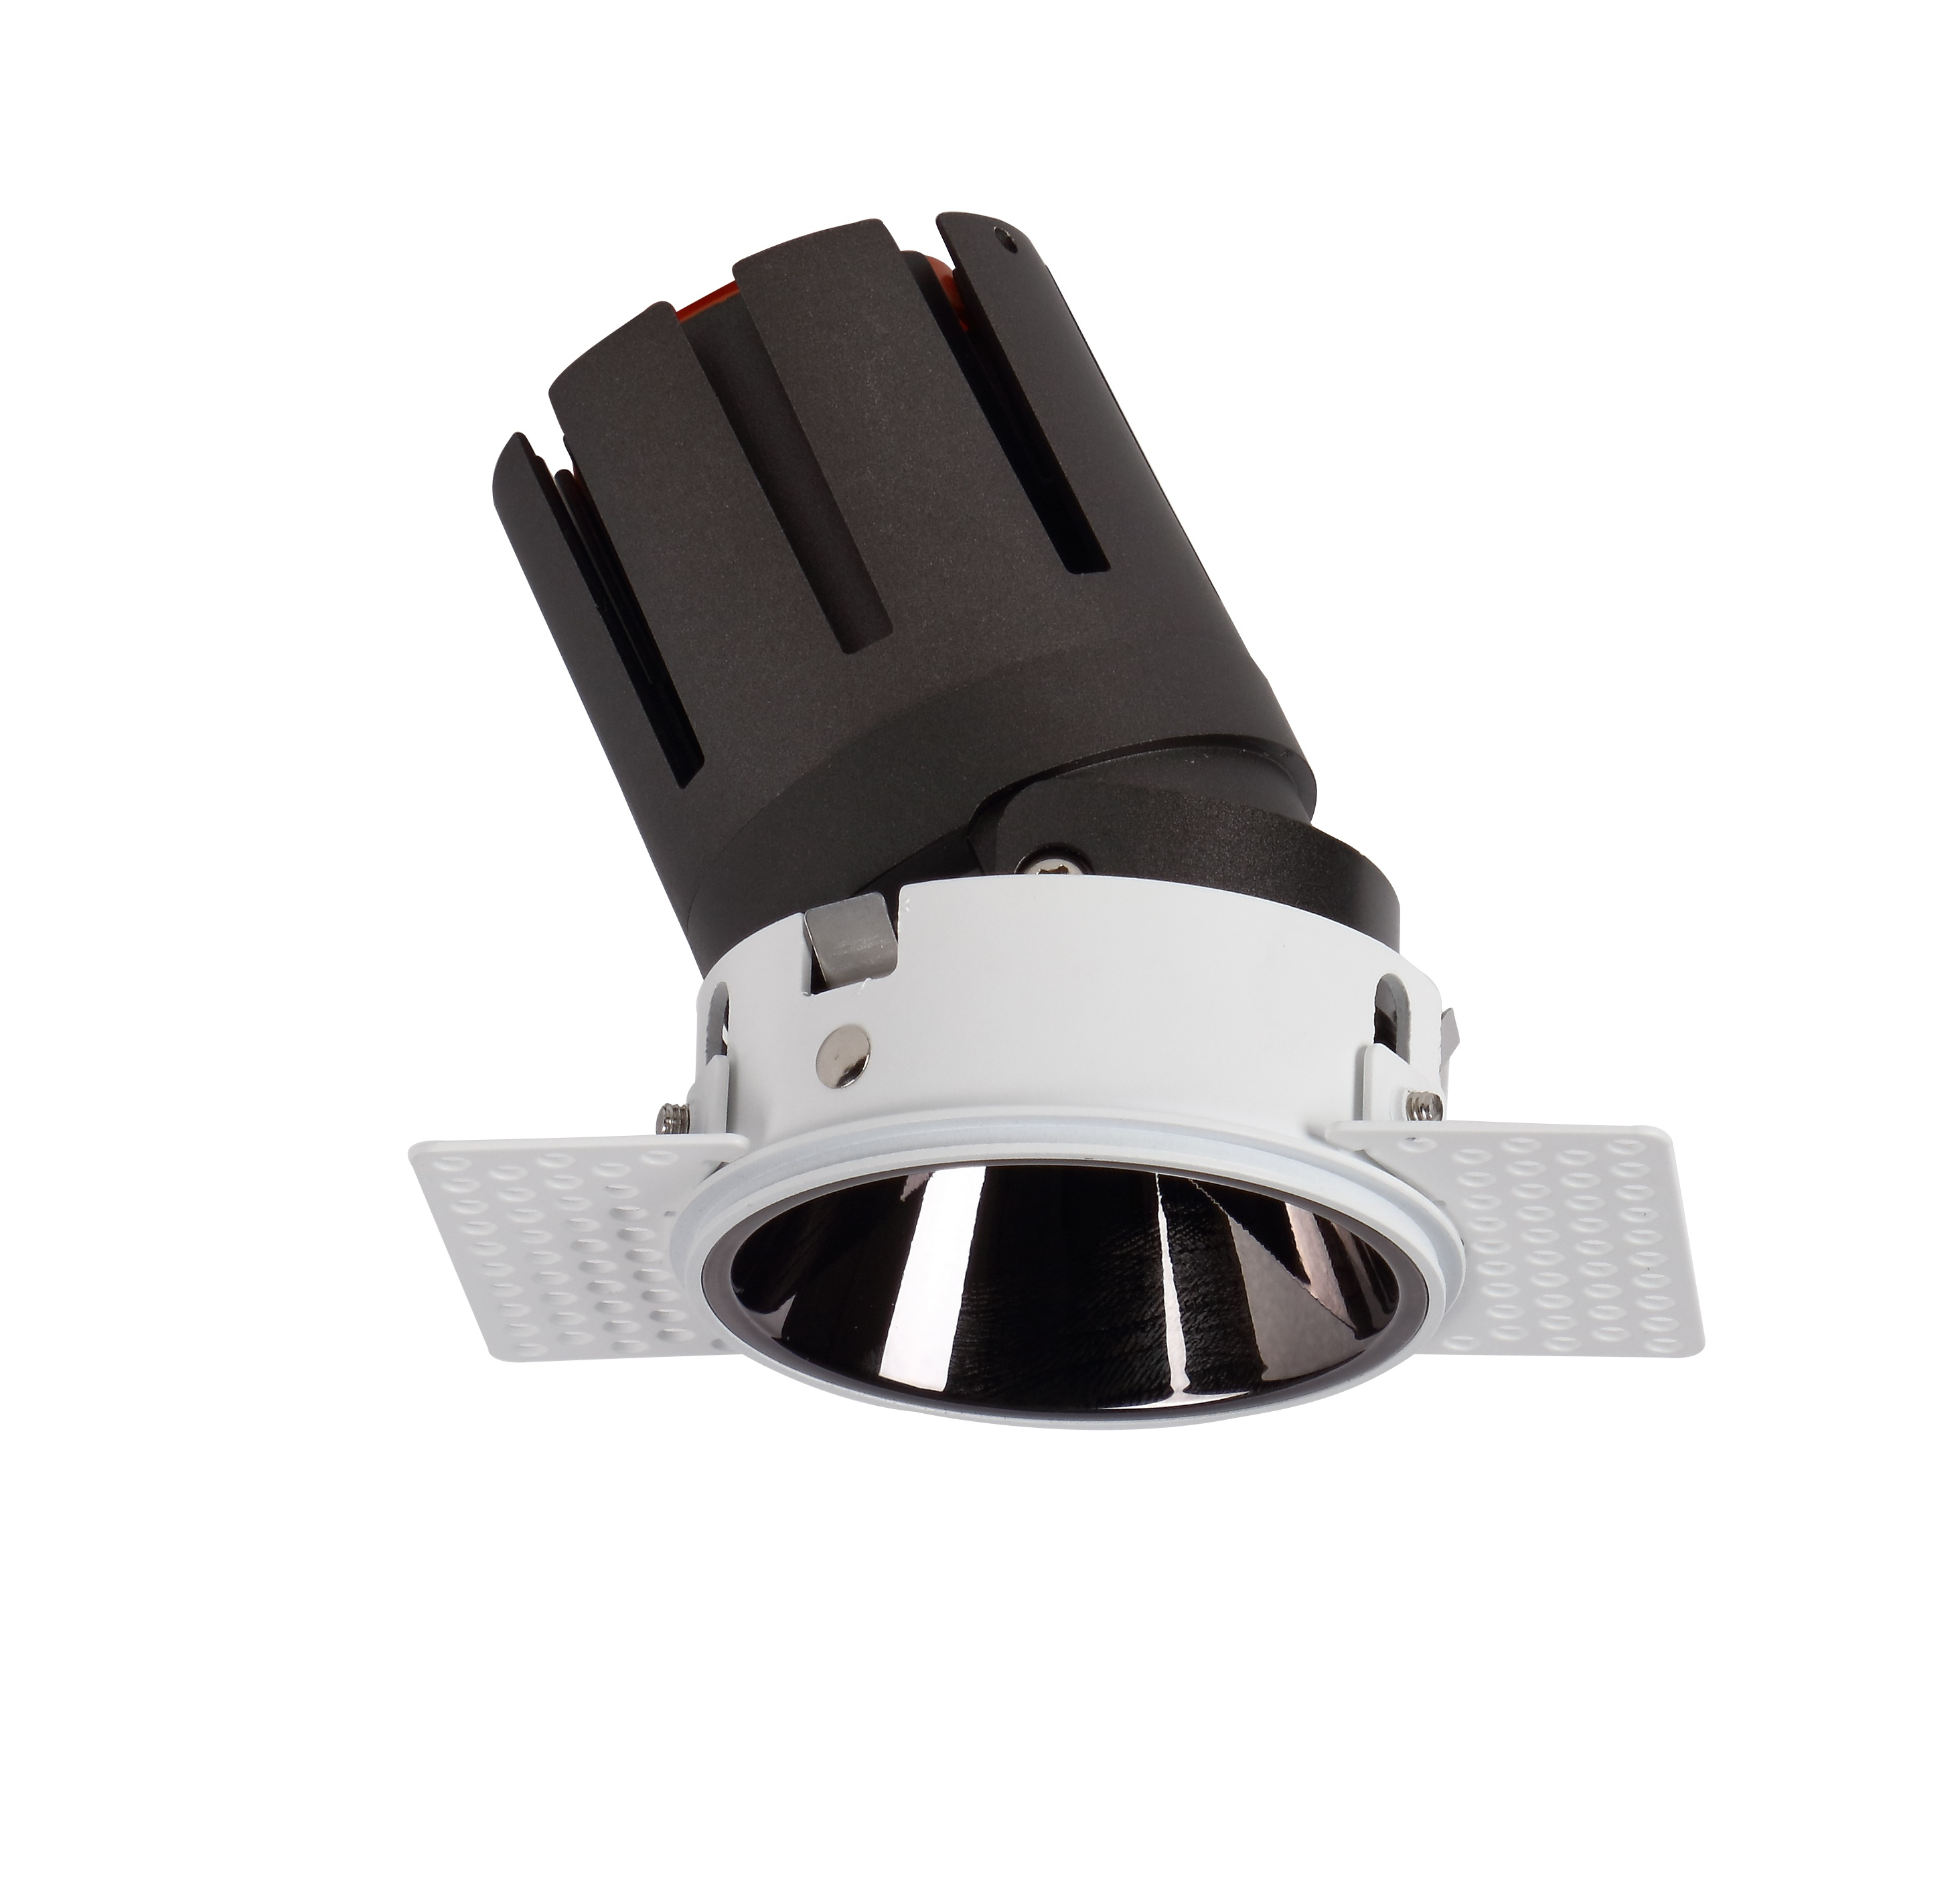 Trimless wall wash LED downlight